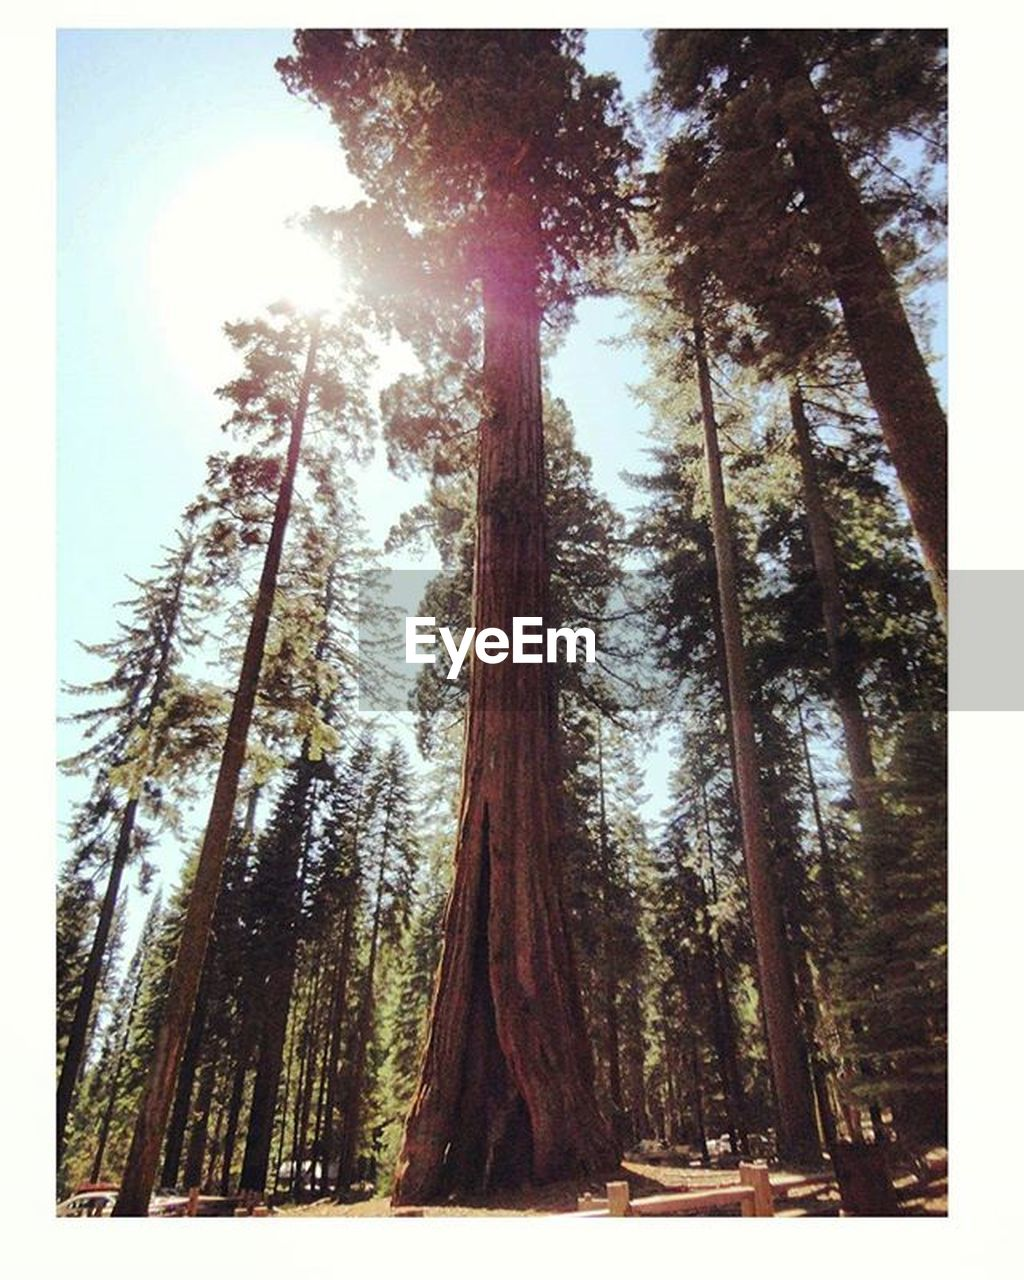 tree, tree trunk, forest, nature, day, low angle view, no people, growth, tranquility, outdoors, beauty in nature, sky, close-up